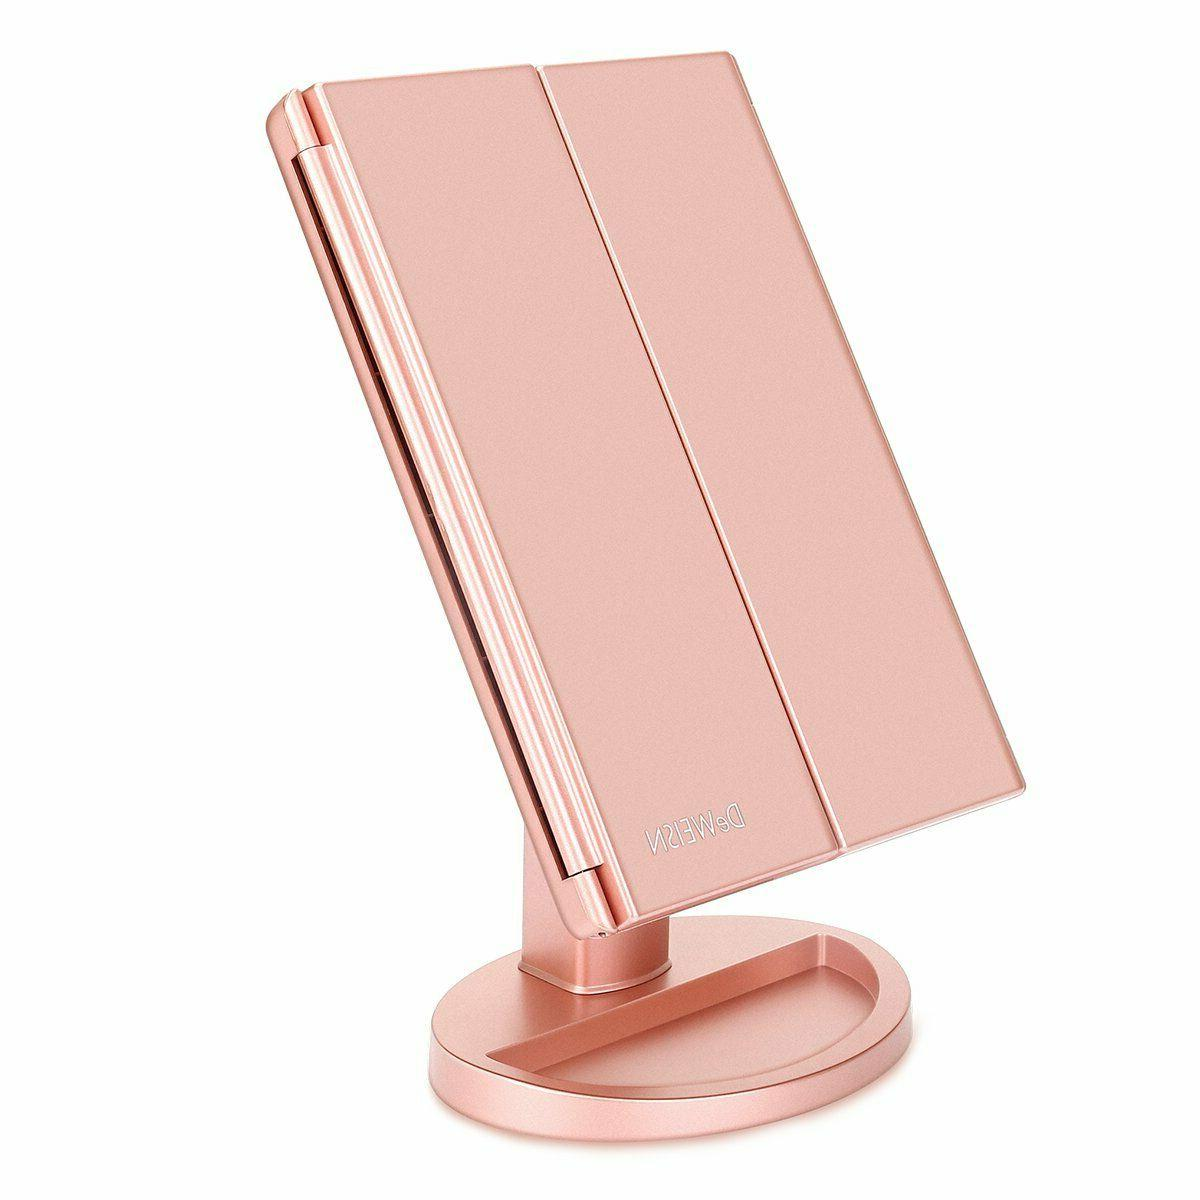 tri fold vanity mirror with 21 led